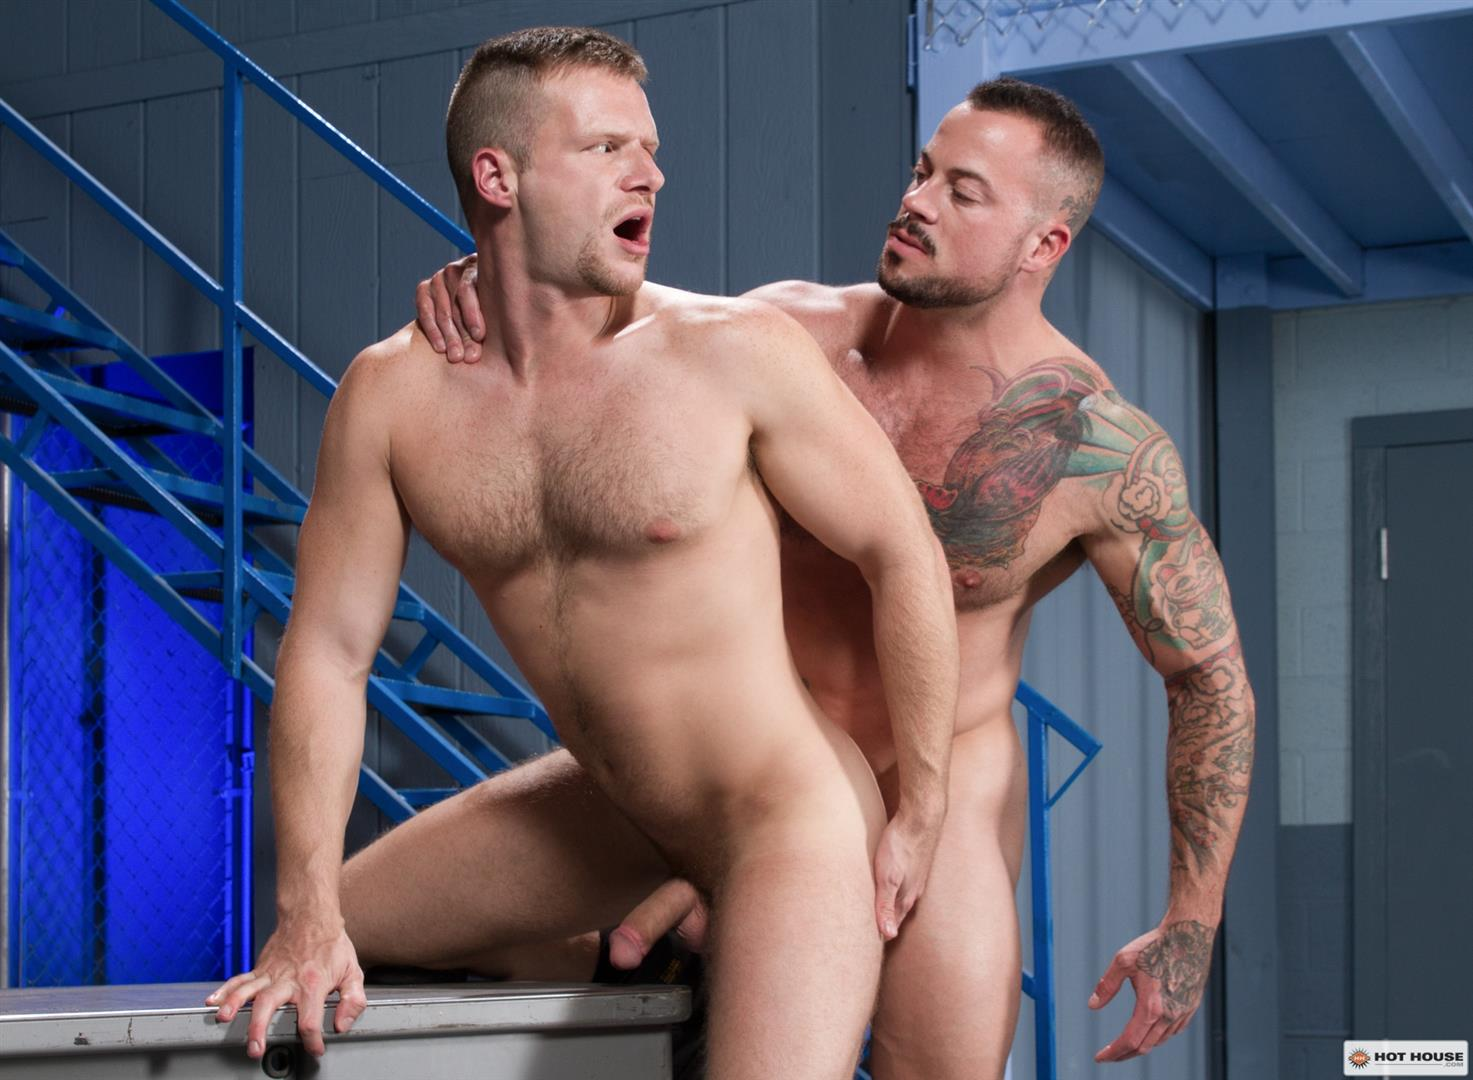 Hot-House-Brian-Bonds-and-Sean-Duran-Male-on-Male-Prison-Sex-Amateur-Gay-Porn-13 Correctional Officer Brian Bonds Gets Fucked By Inmate Sean Duran